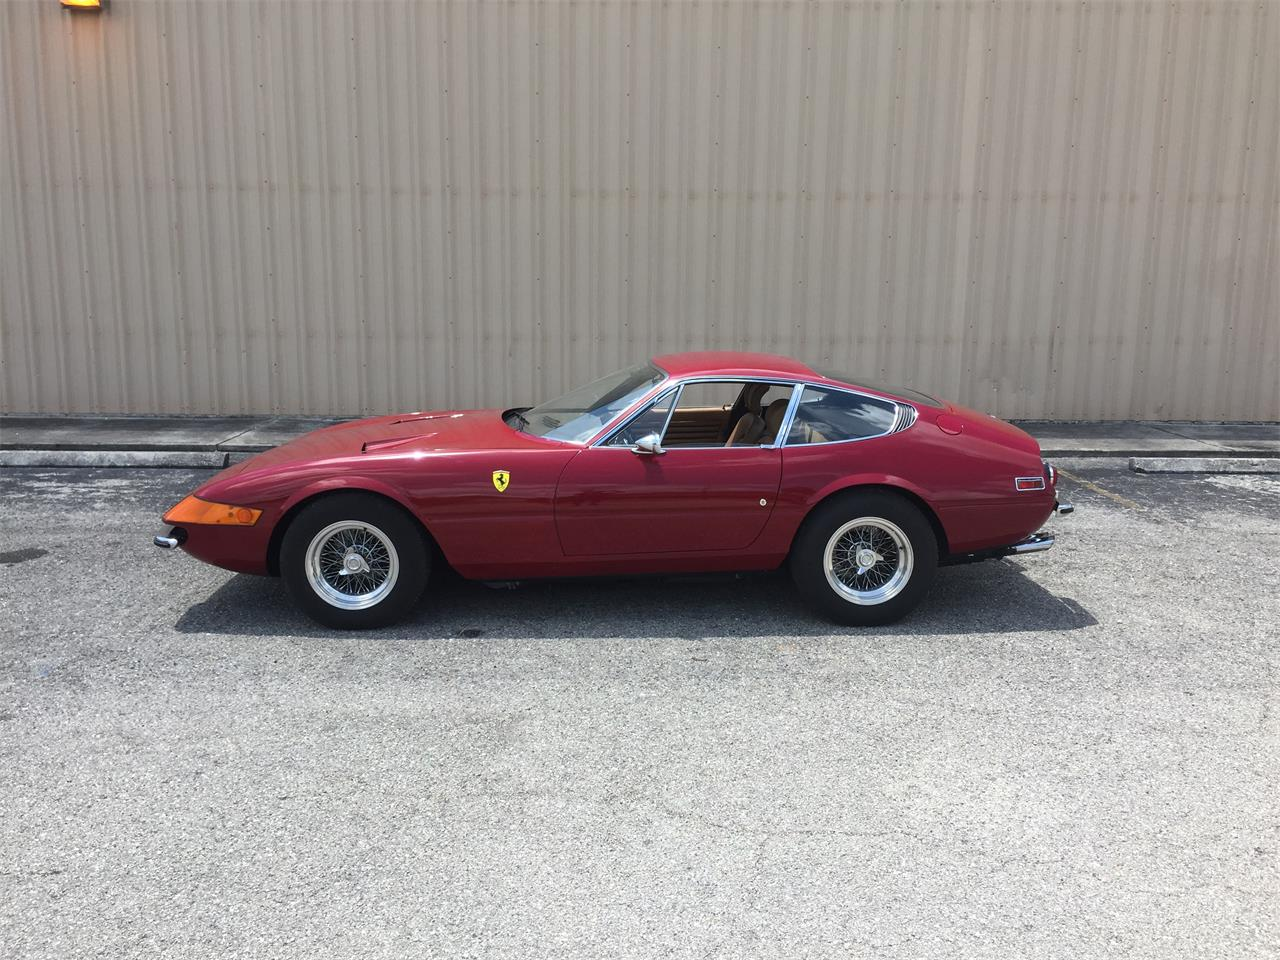 Large Picture of Classic 1972 365 GTB - $645,000.00 Offered by a Private Seller - L3N2